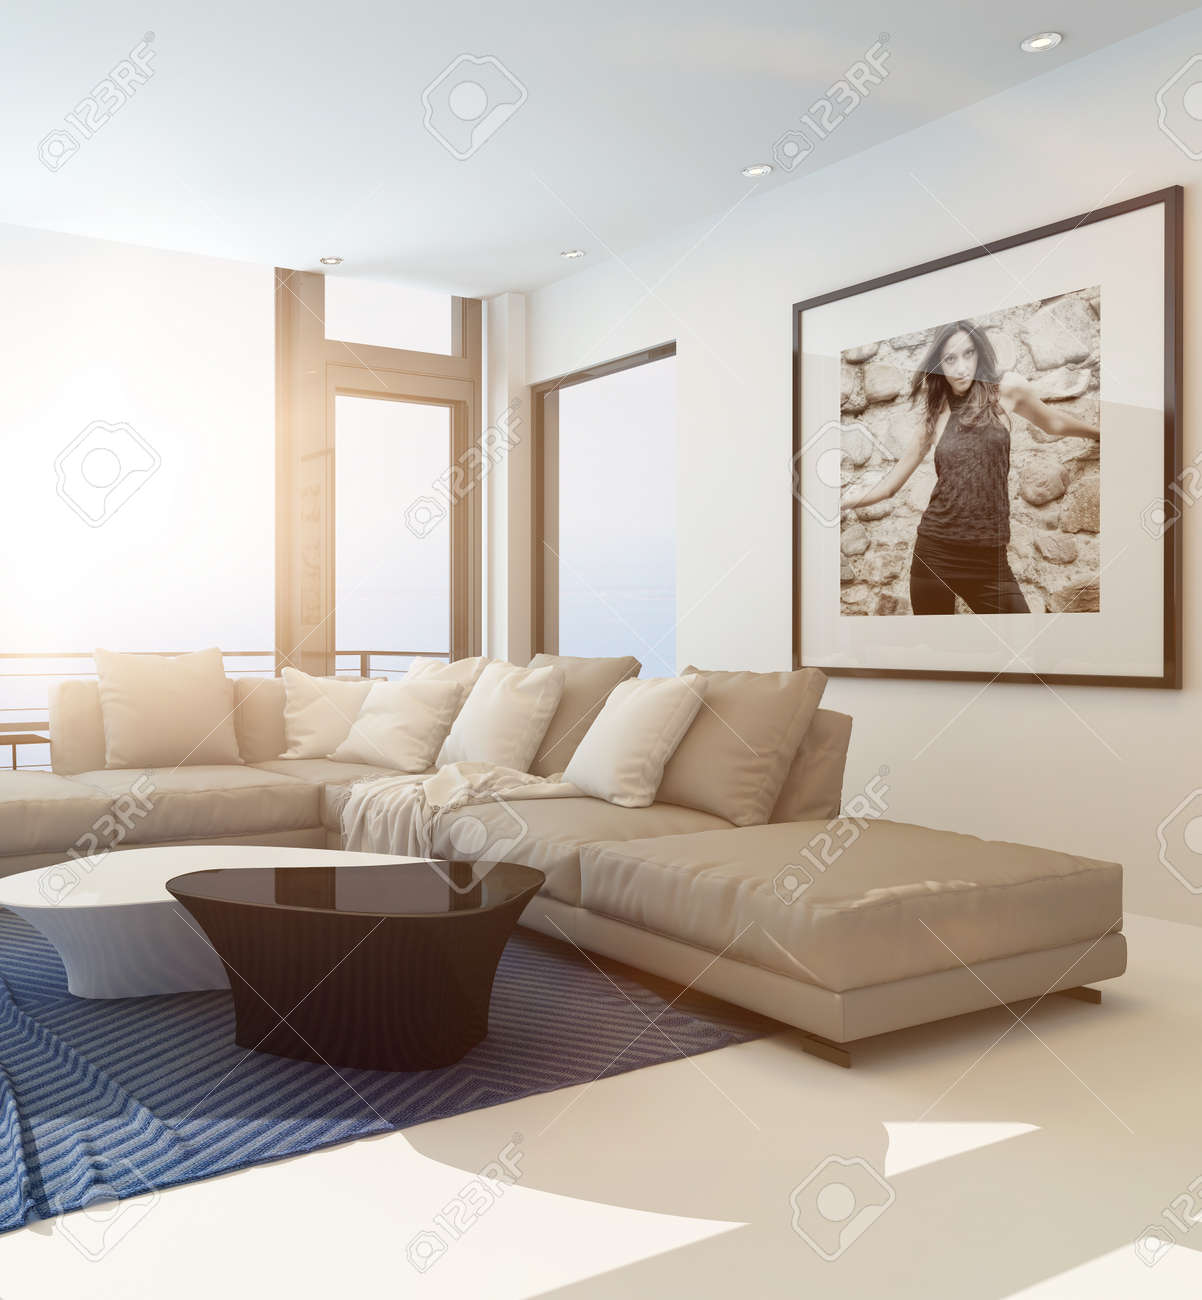 Modern Comfortable Living Room Interior With An Upholstered Beige ...